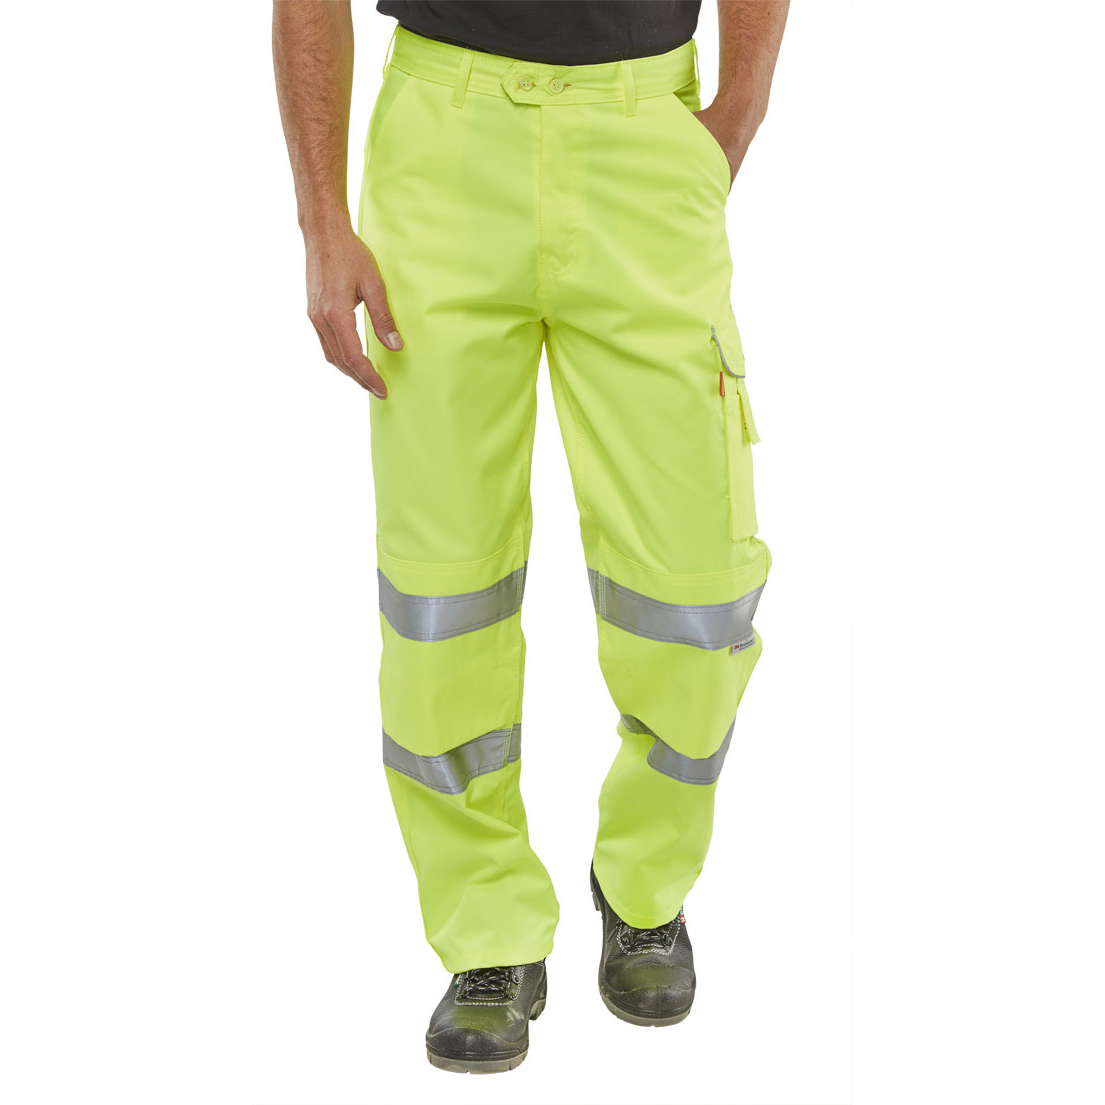 BSeen Trousers Polycotton Hi-Vis EN471 Saturn Yellow 42 Long Ref PCTENSY42T *Up to 3 Day Leadtime*